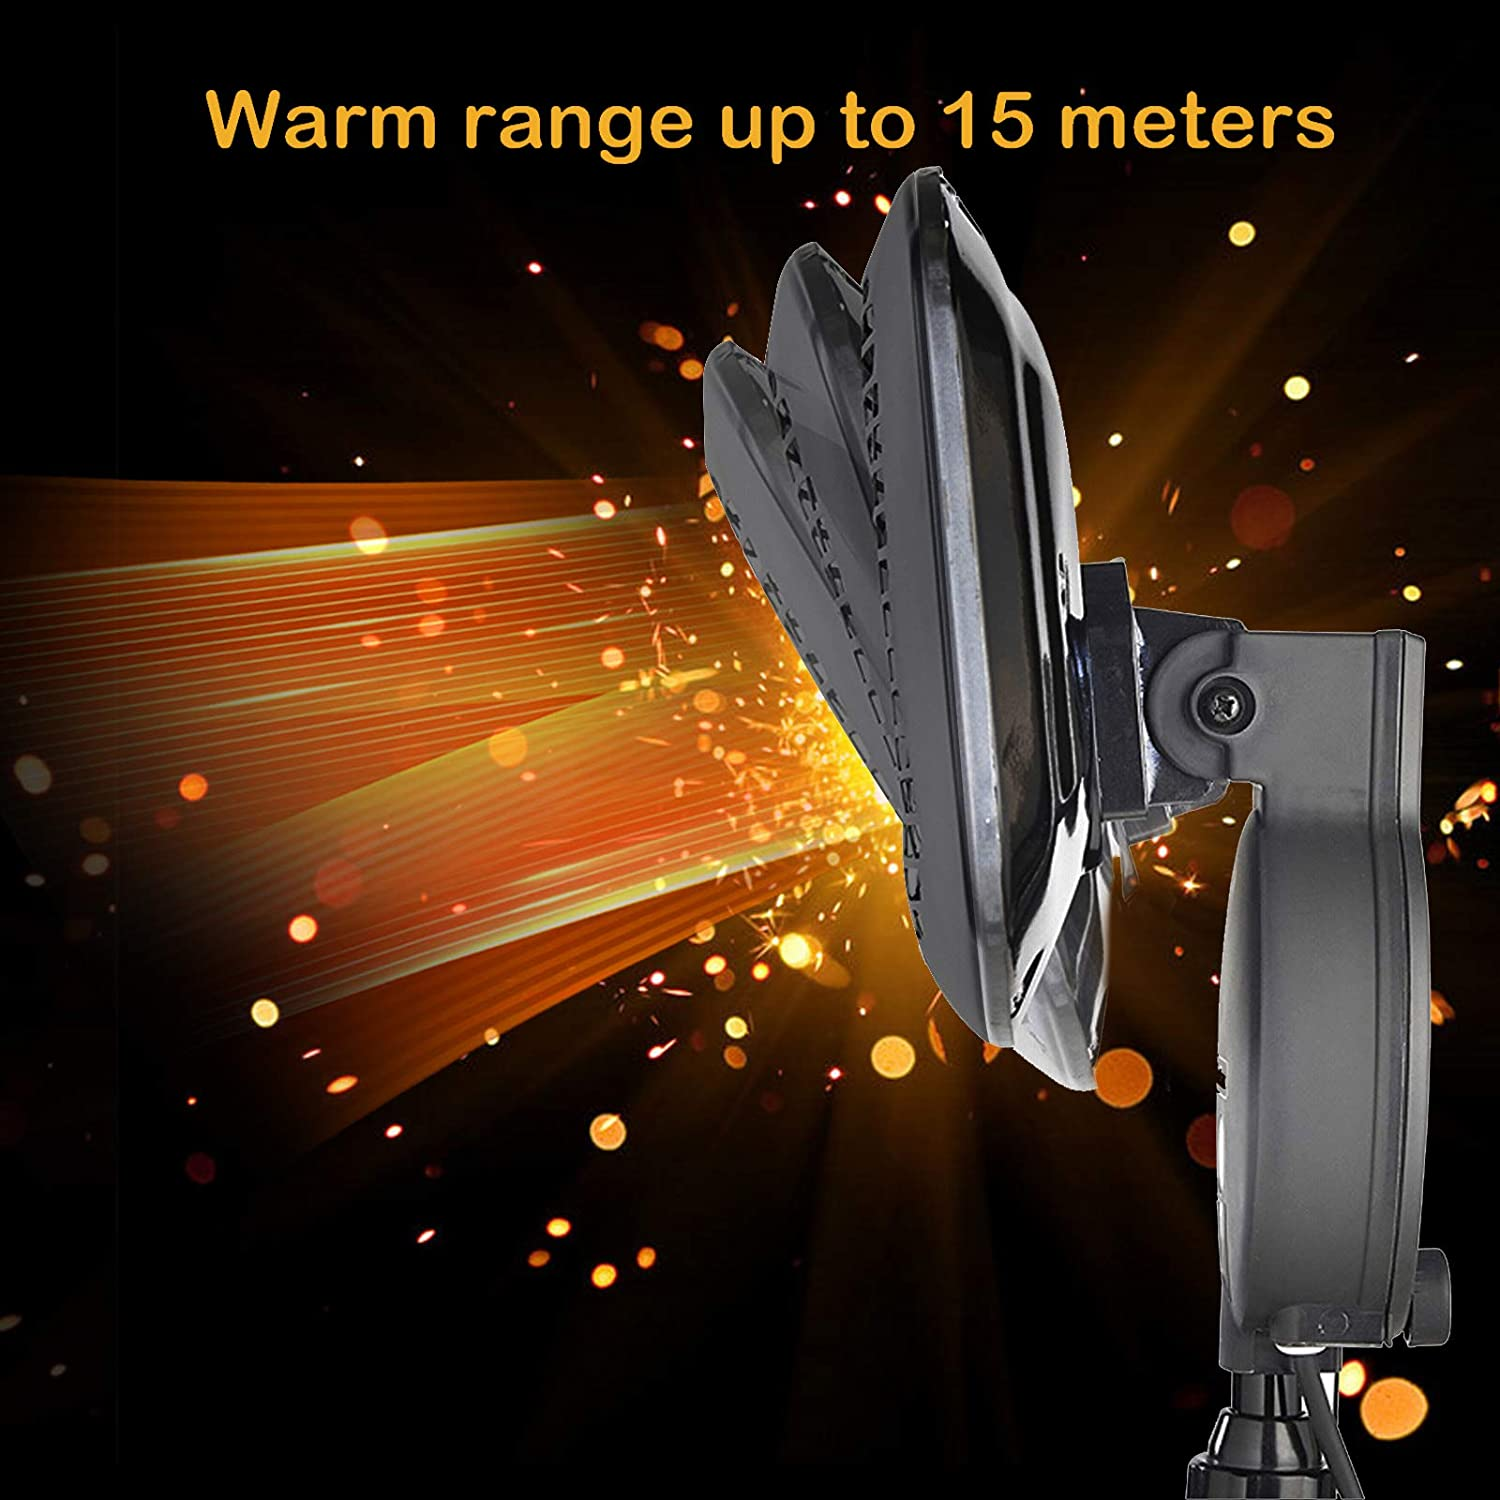 Electric Patio Heater Freestanding Space Heater for Courtyard Garage Electric Outdoor Patio Heater